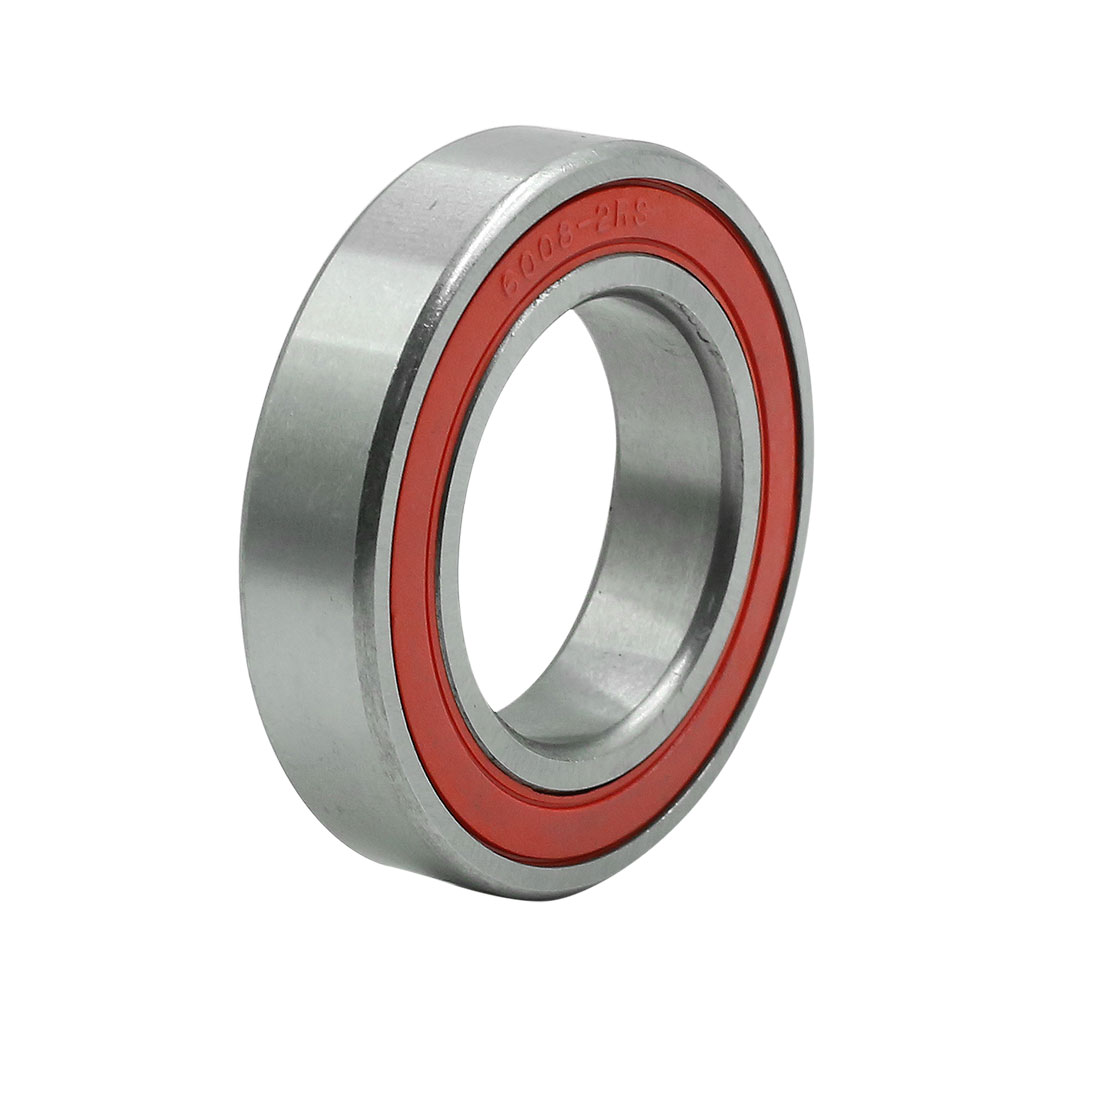 Universal 6008-2RS Deep Groove Double Shielded Ball Bearing 68 x 40 x 15mm - image 3 of 3